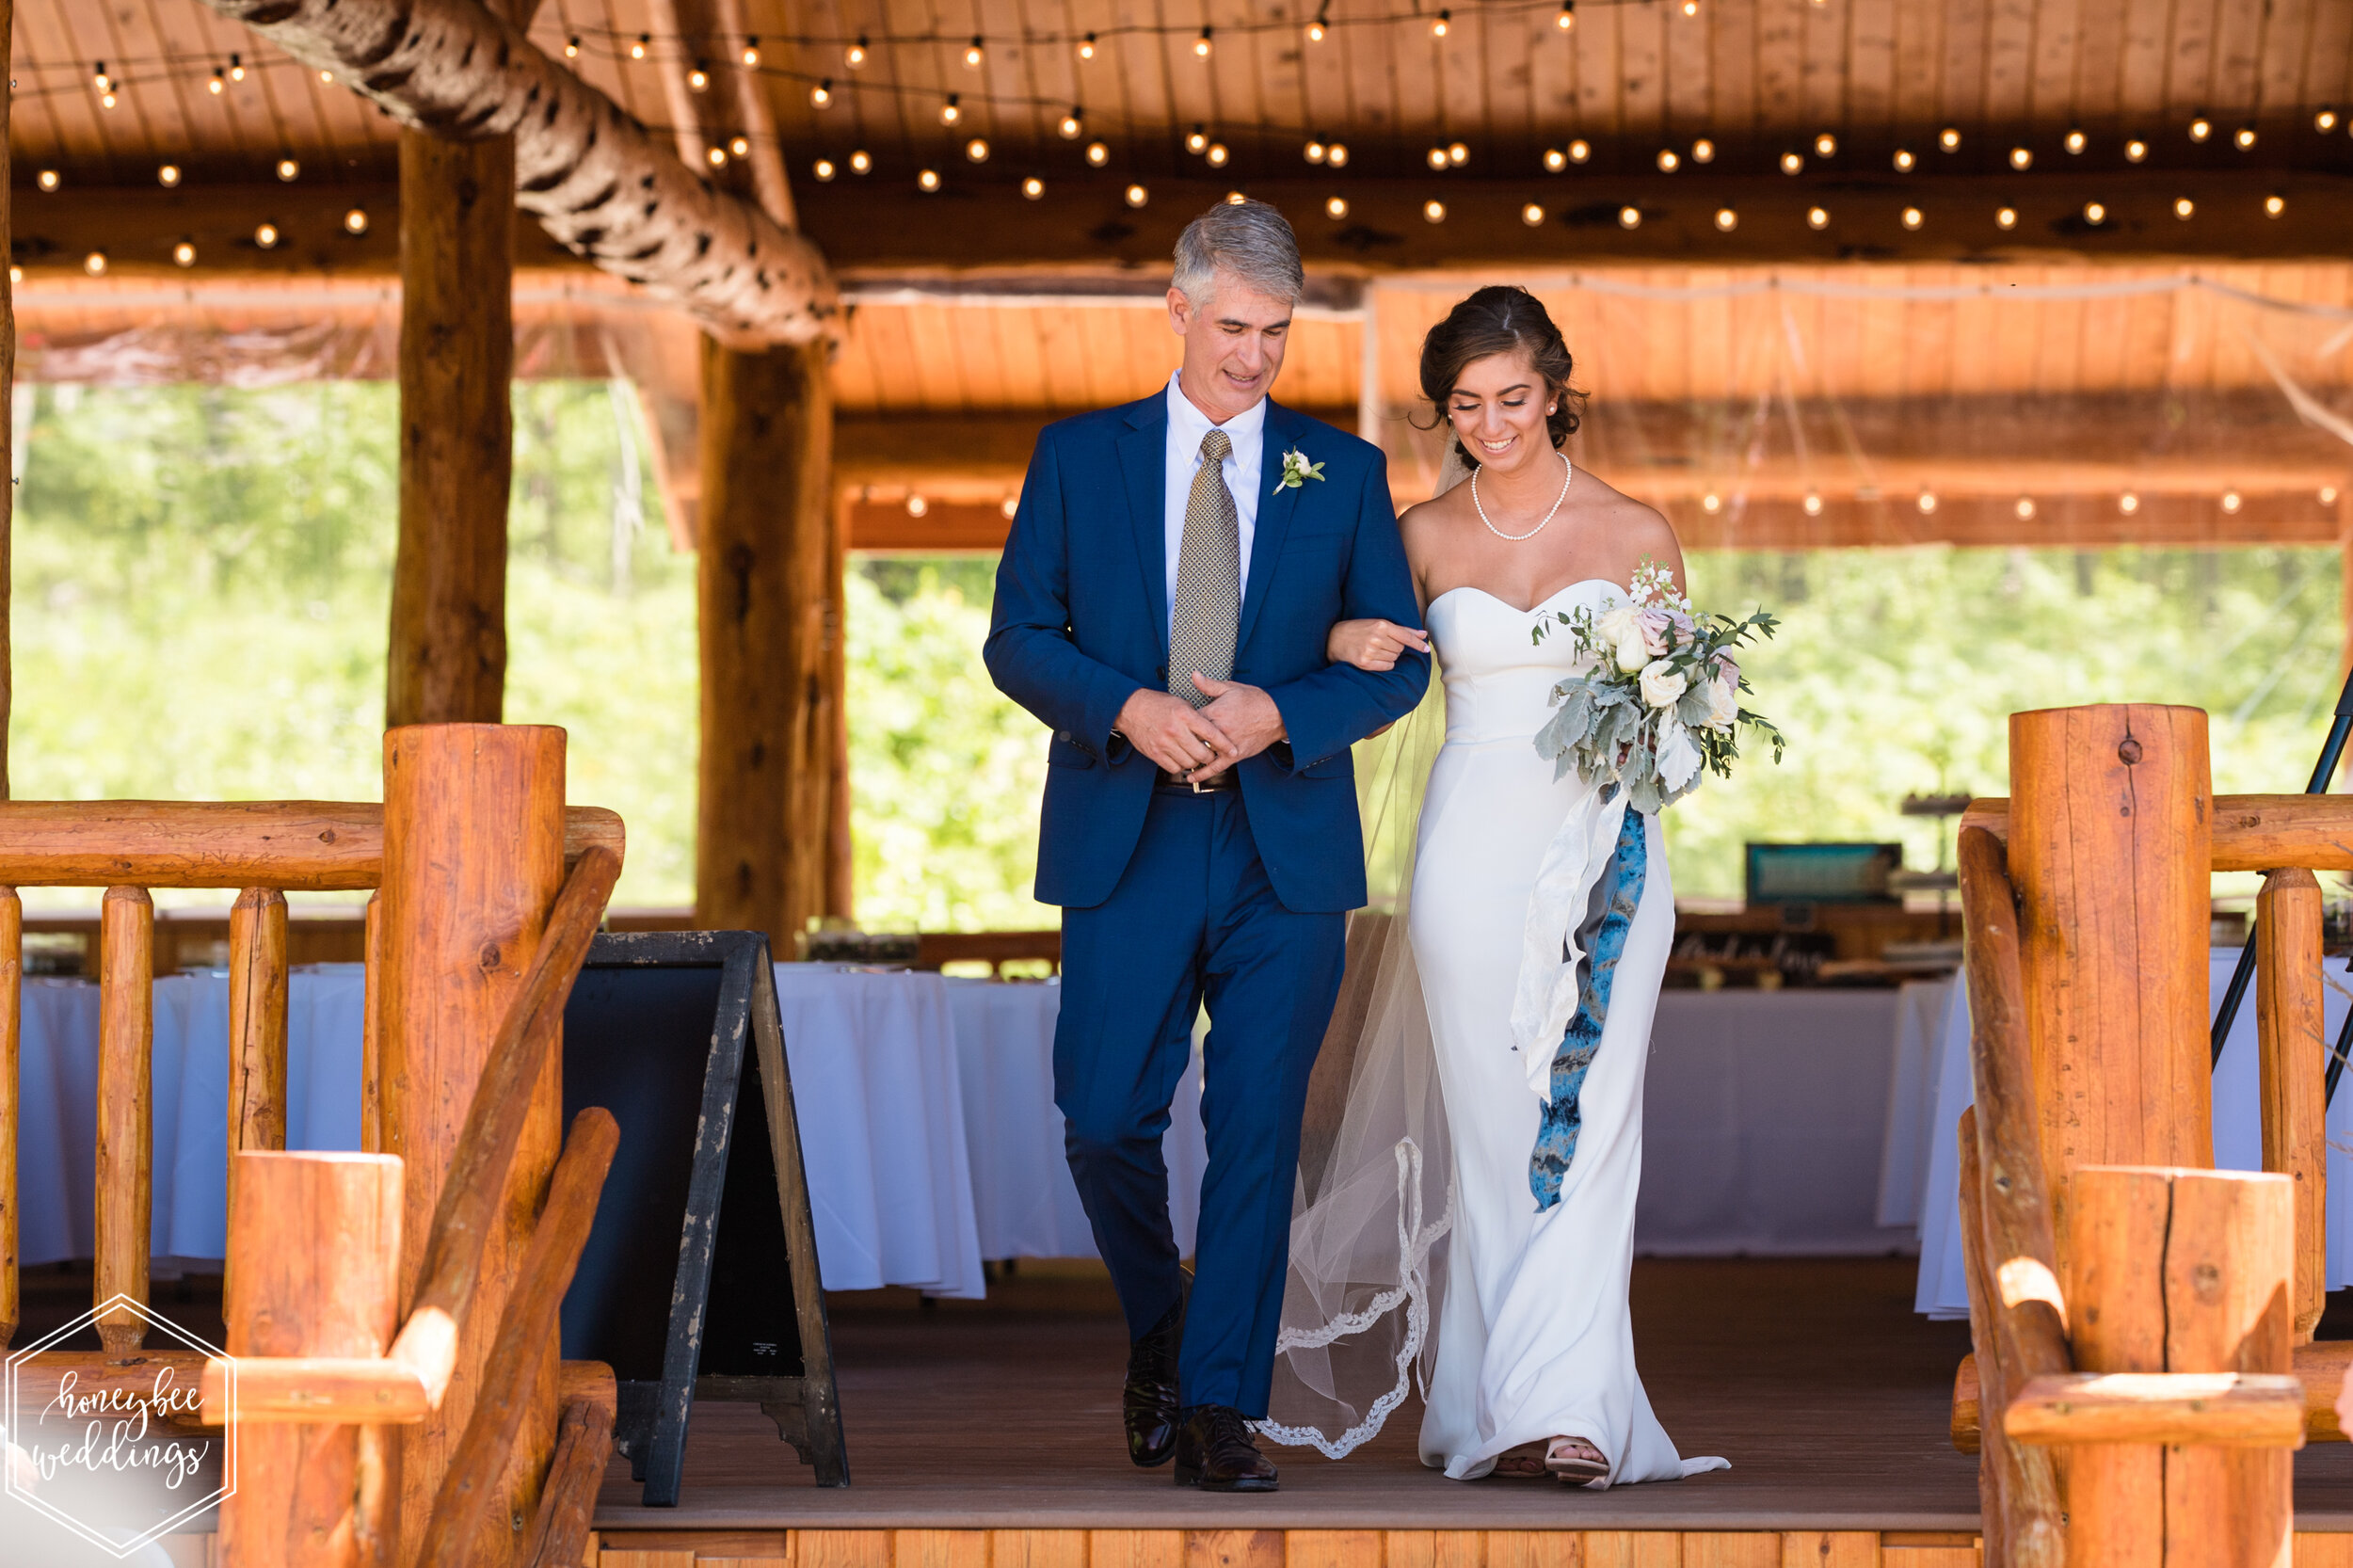 085Glacier National Park Wedding_Glacier Outdoor Center_Honeybee Weddings_Anna & Seth_July 21, 2019-1182.jpg